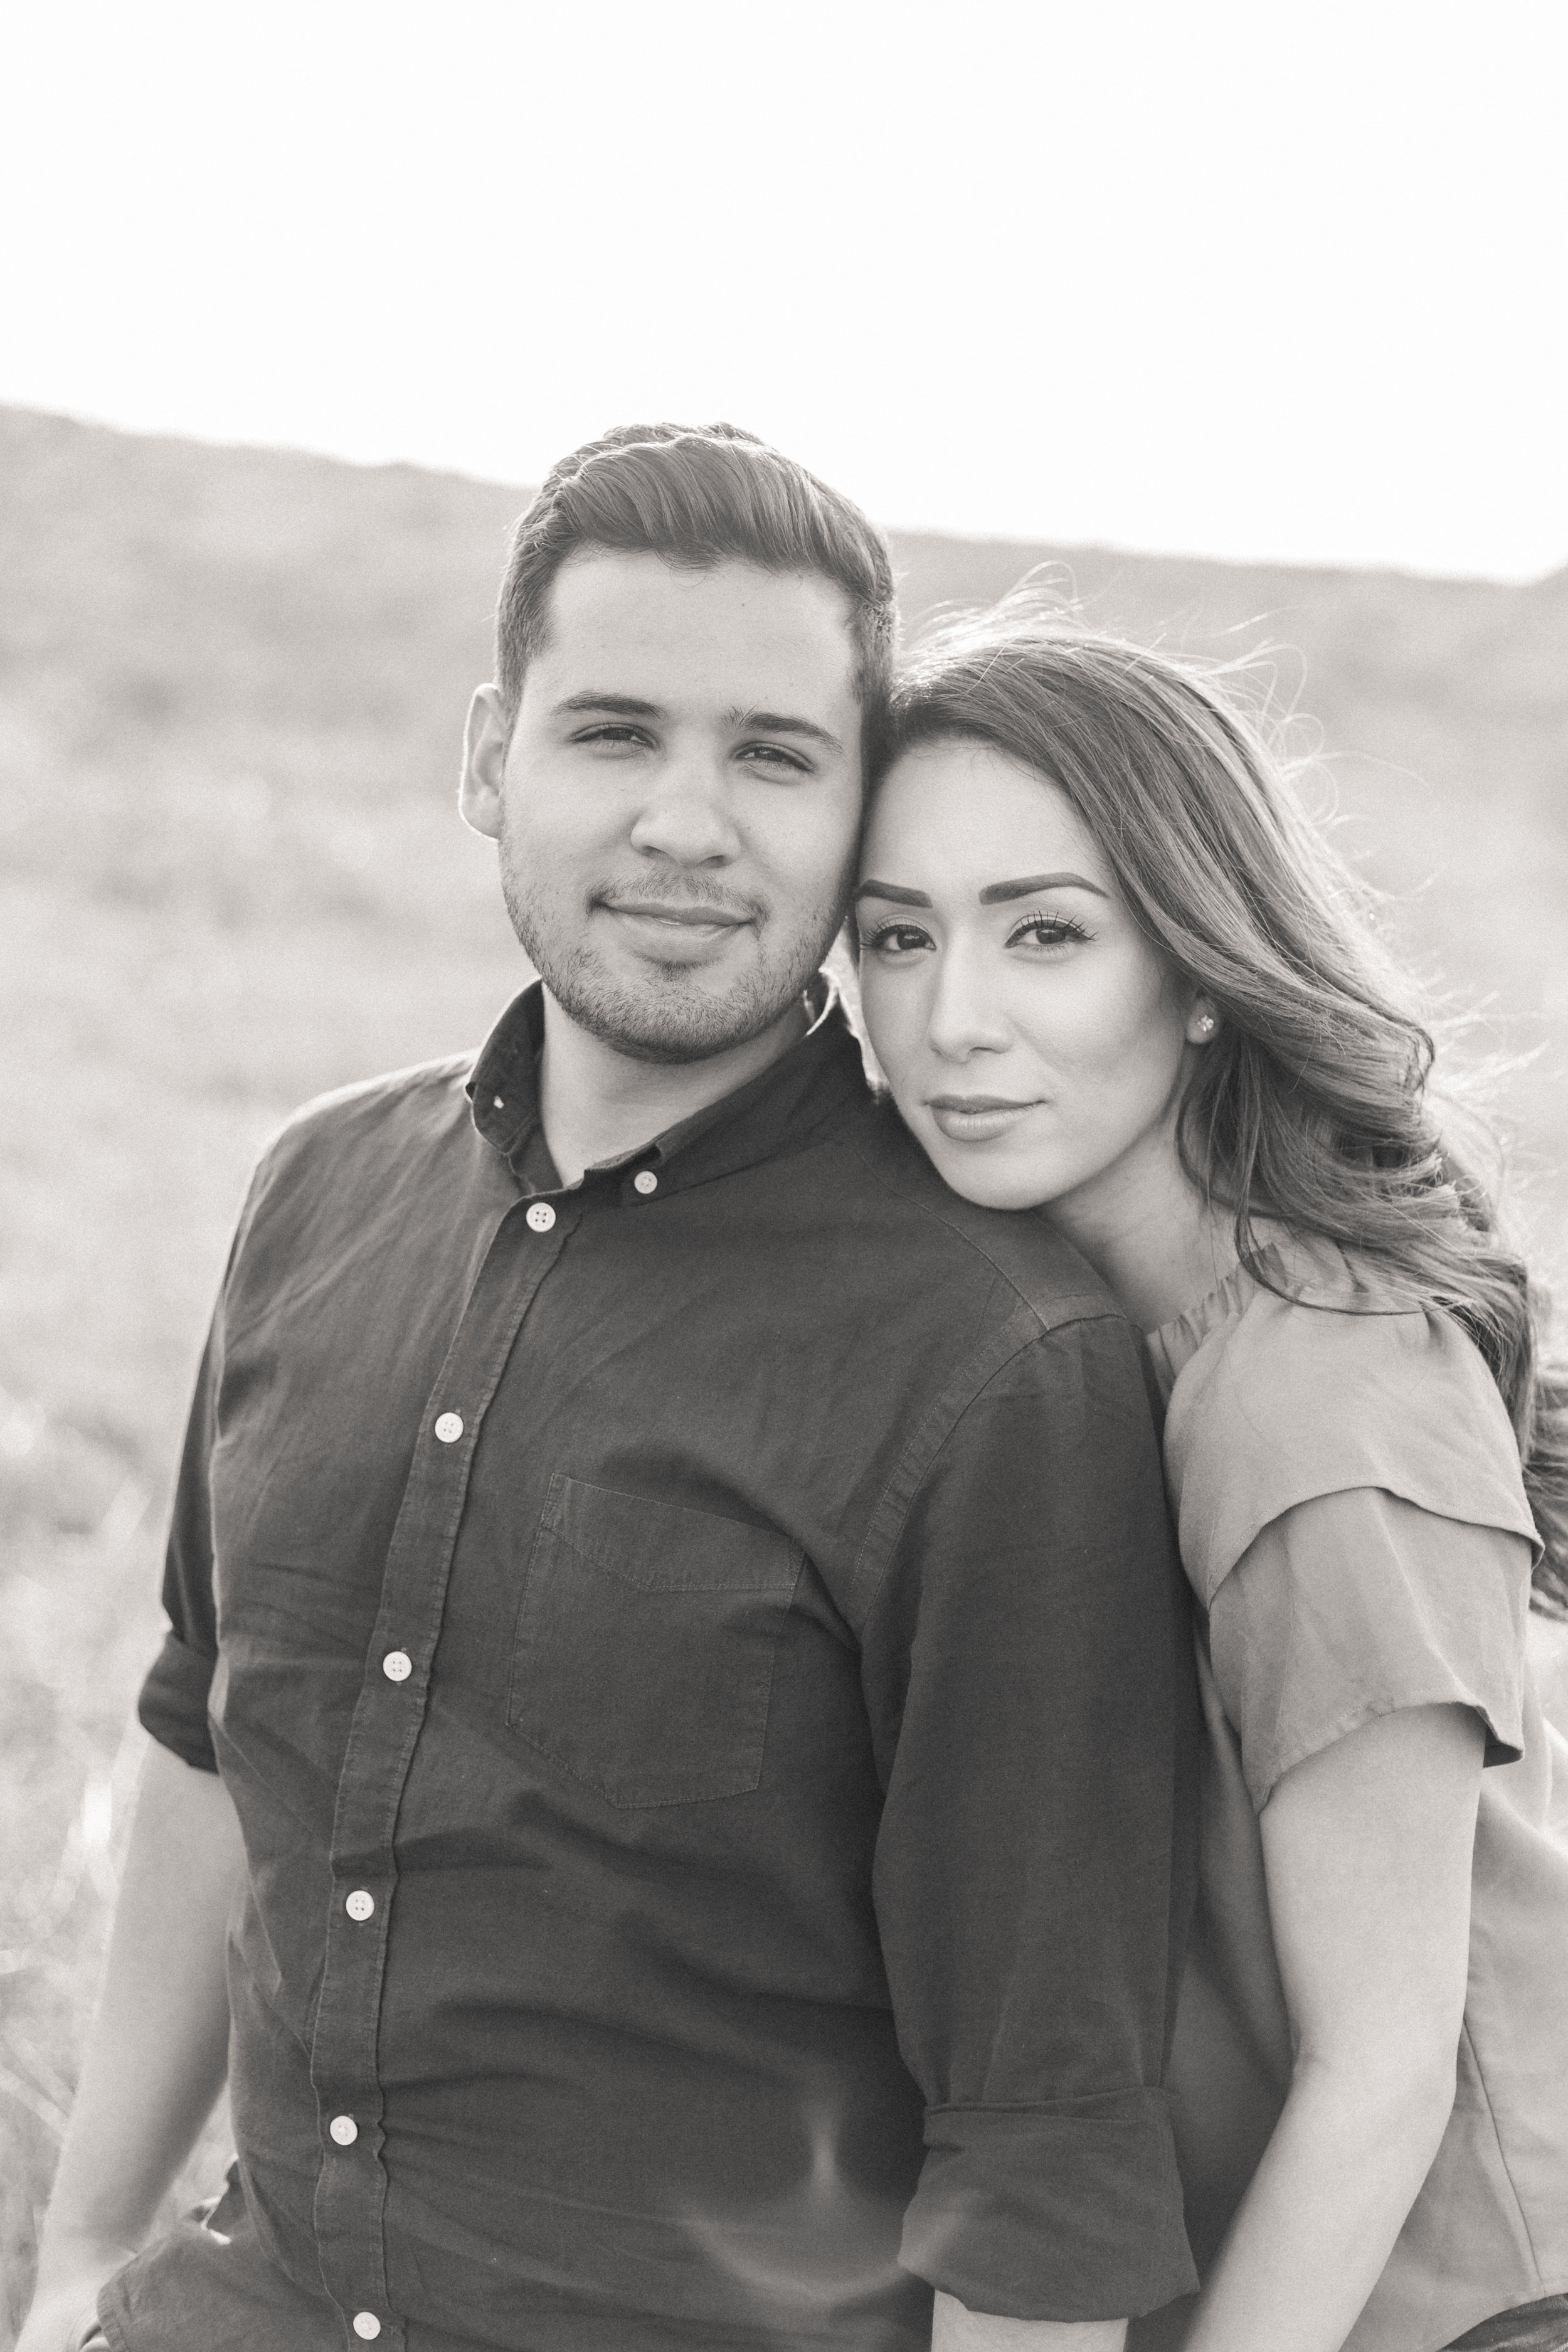 Temecula couples photography session